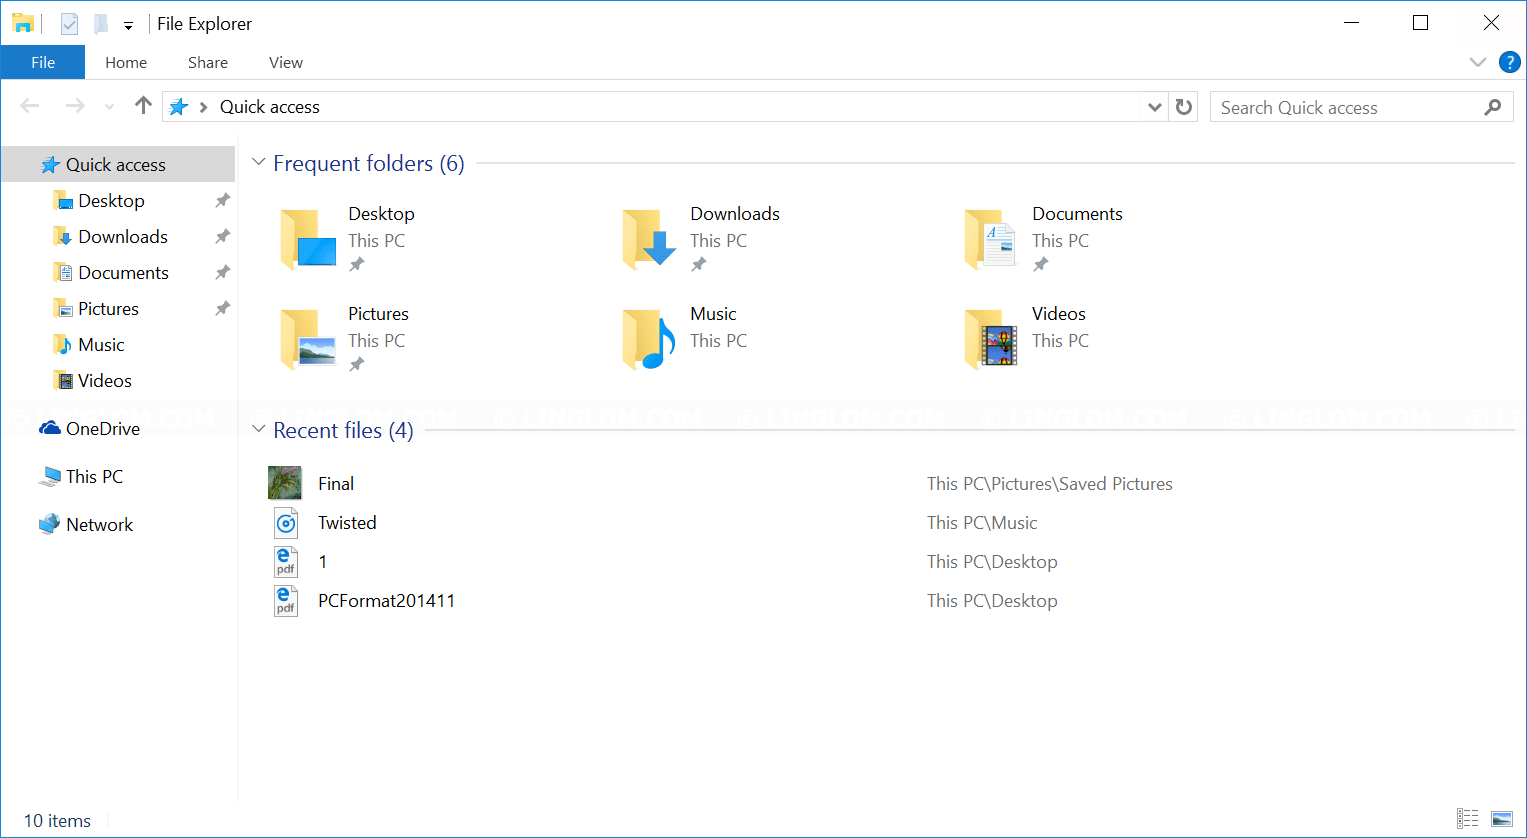 Windows 10 file explorer's quick access